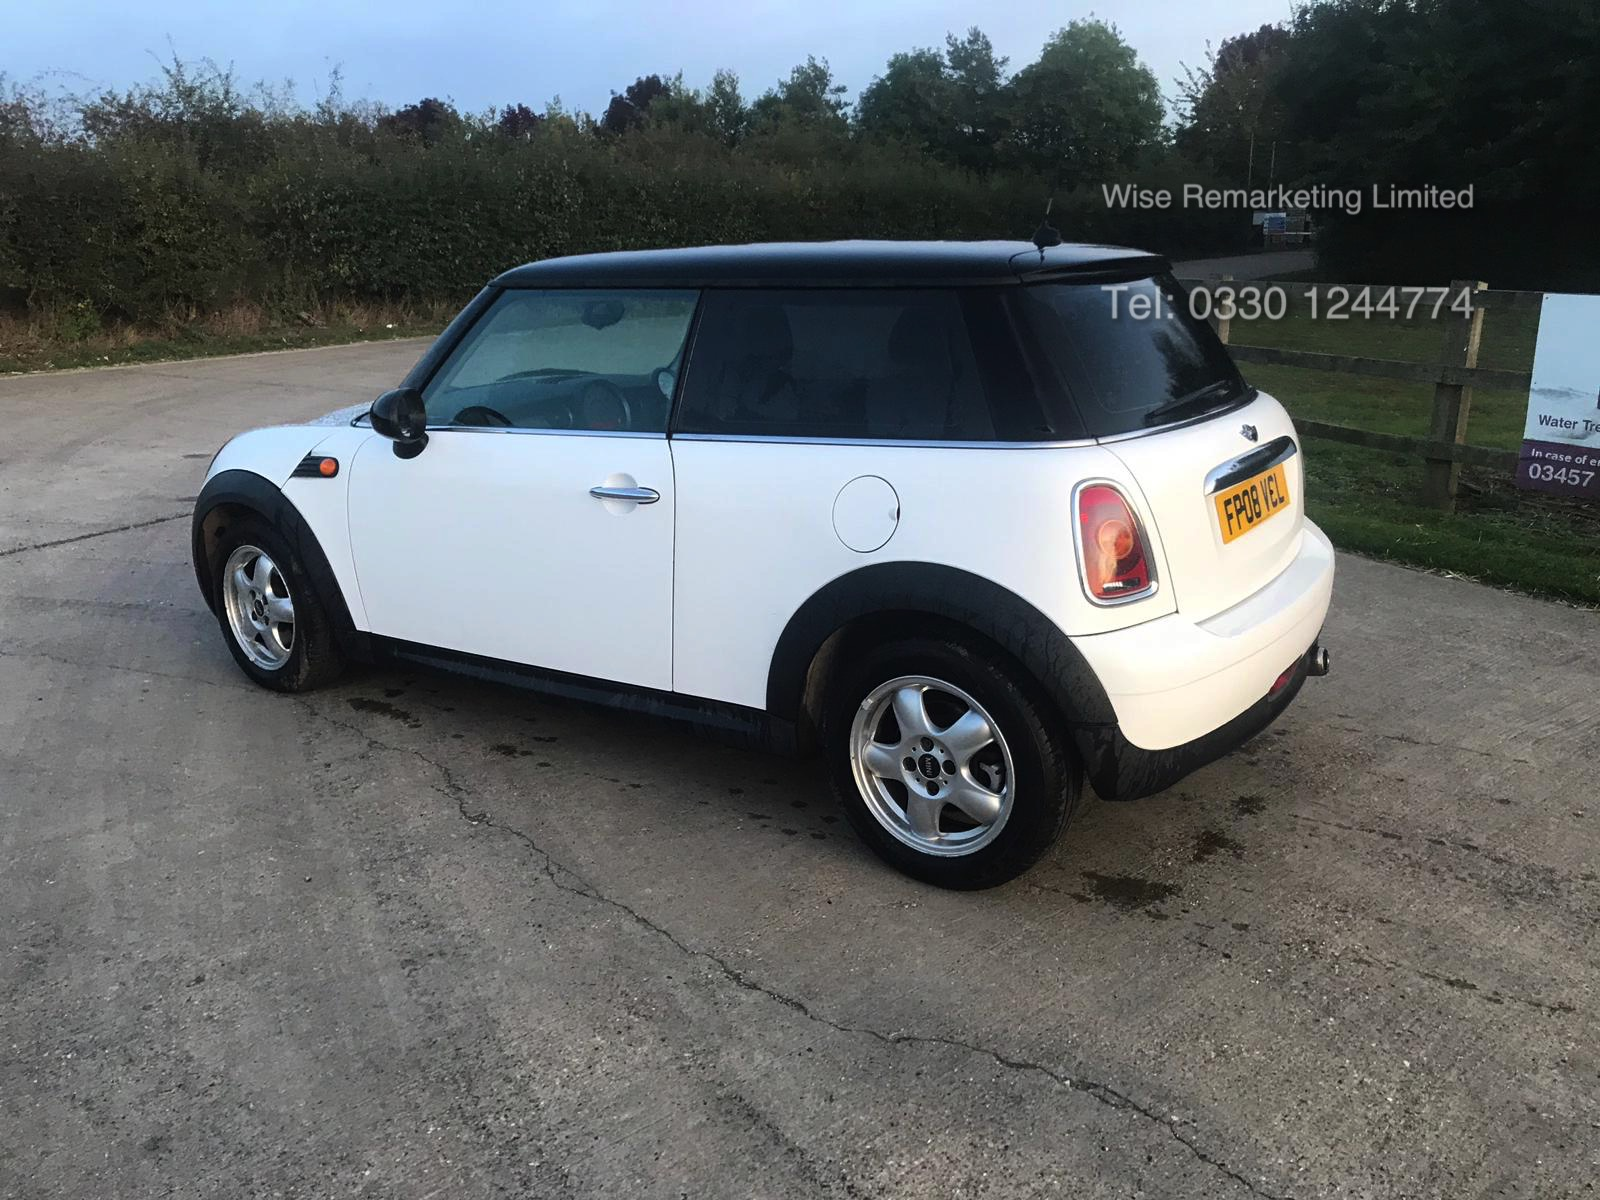 Lot 24 - Mini Cooper Hatchback 1.6 D 3 Door - 2008 - 08 Reg - Service History - White